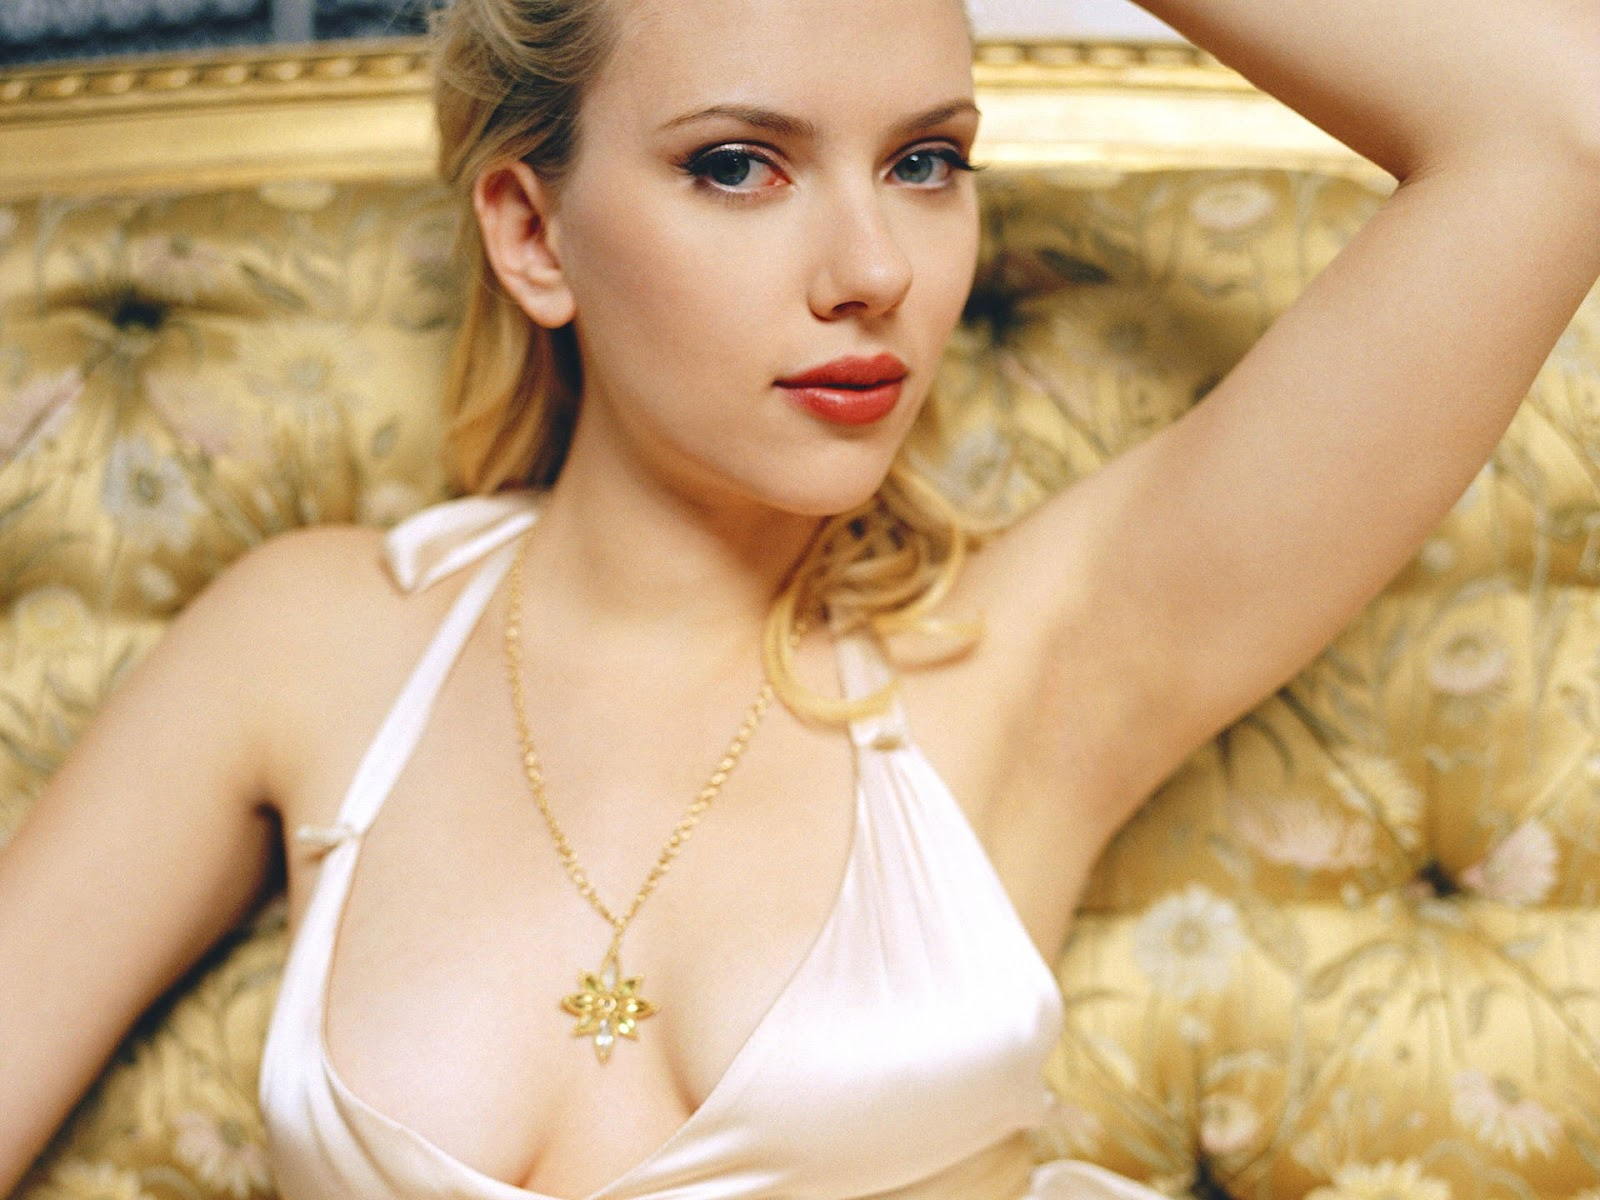 Scarlett Johansson Low Neck Dress 552.39 Kb